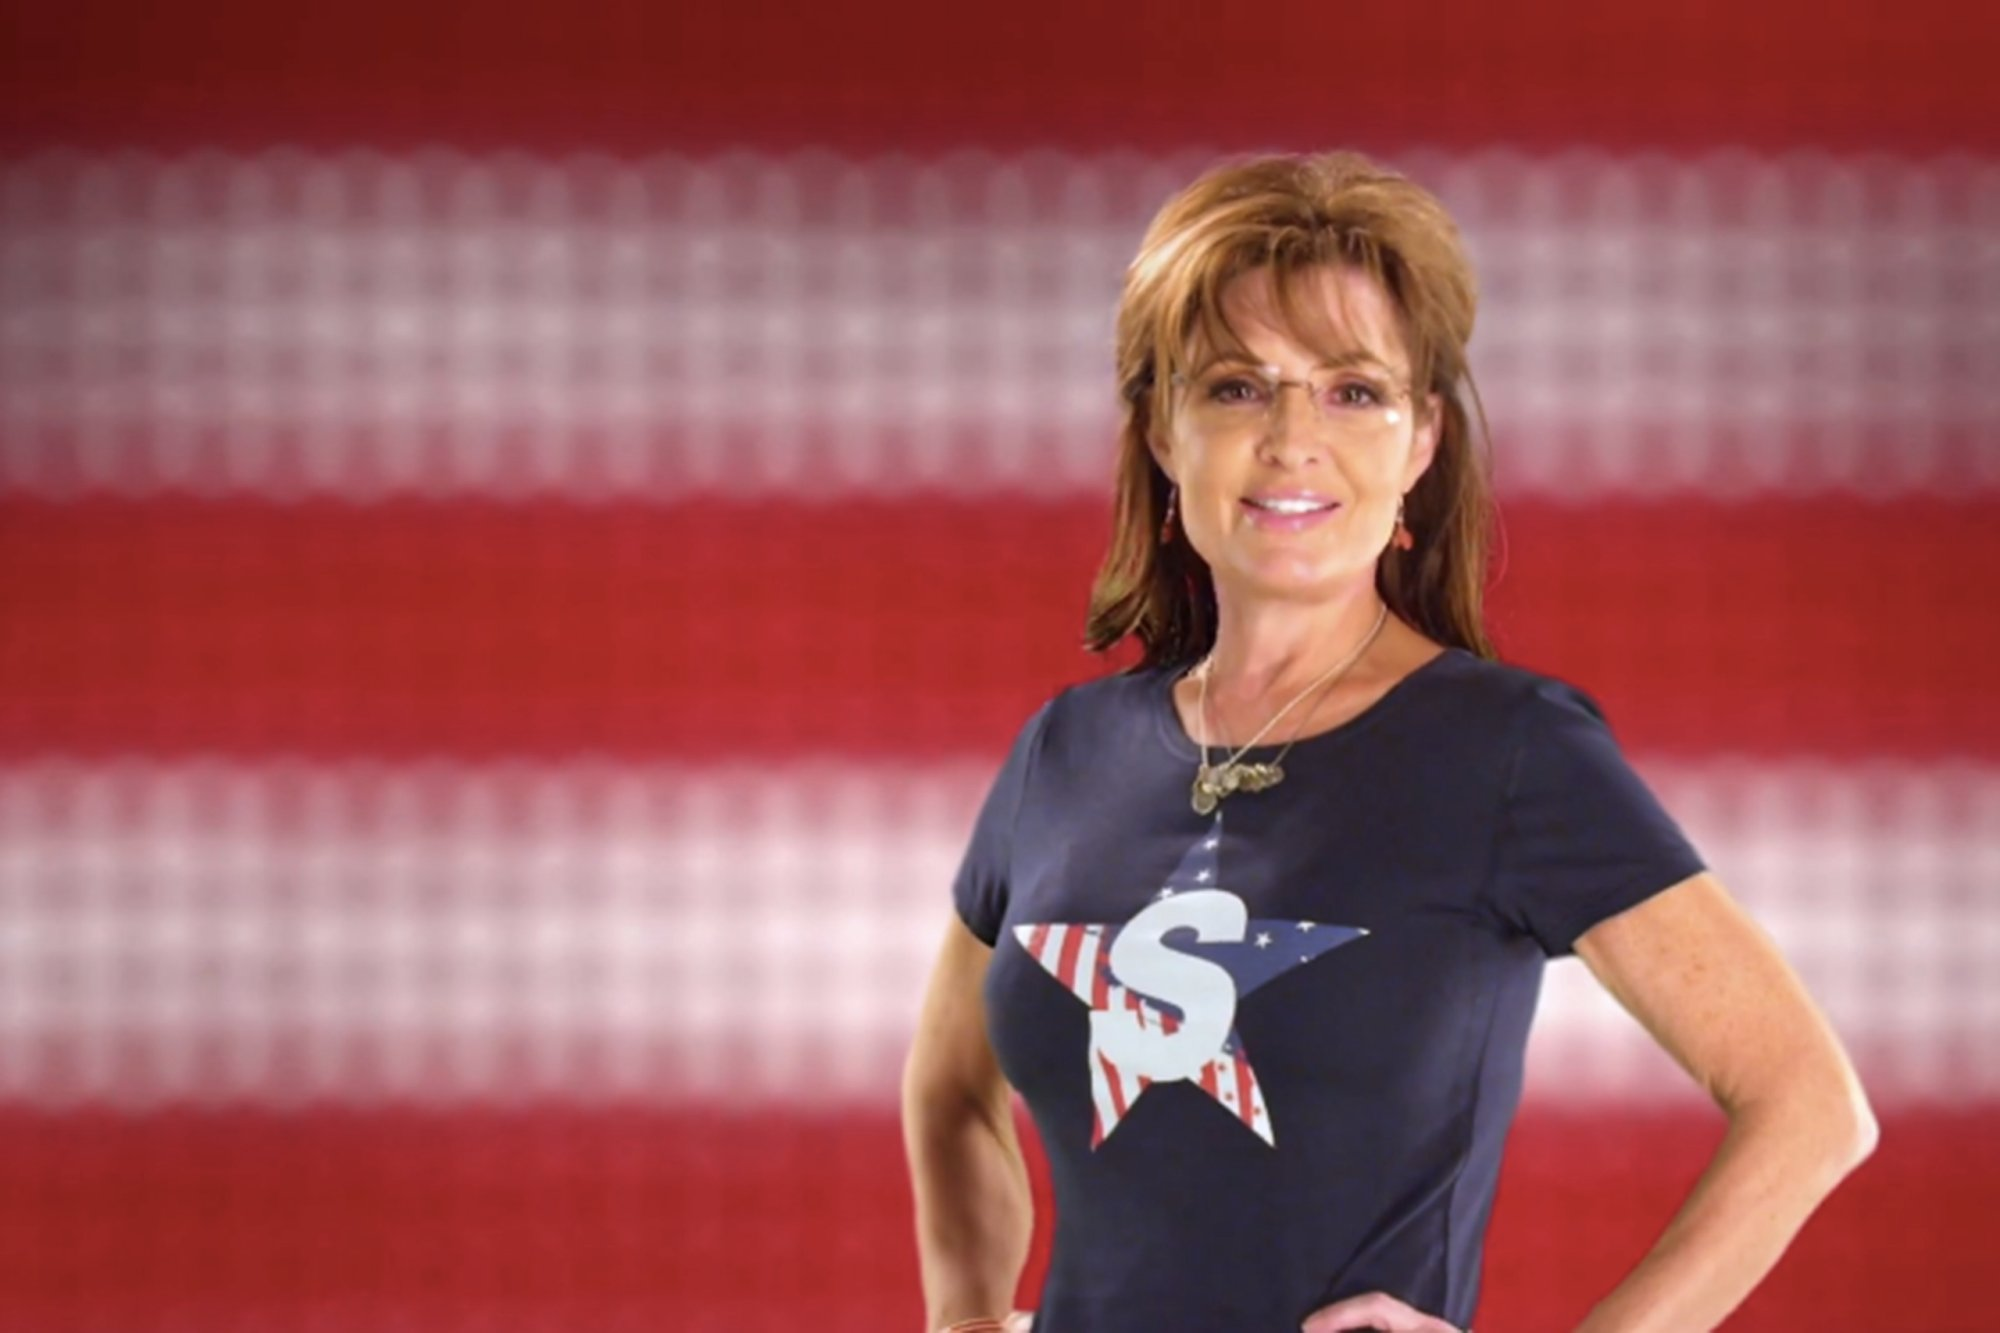 Former Reality Star Sarah Palin Returns To Television - The Daily Beast